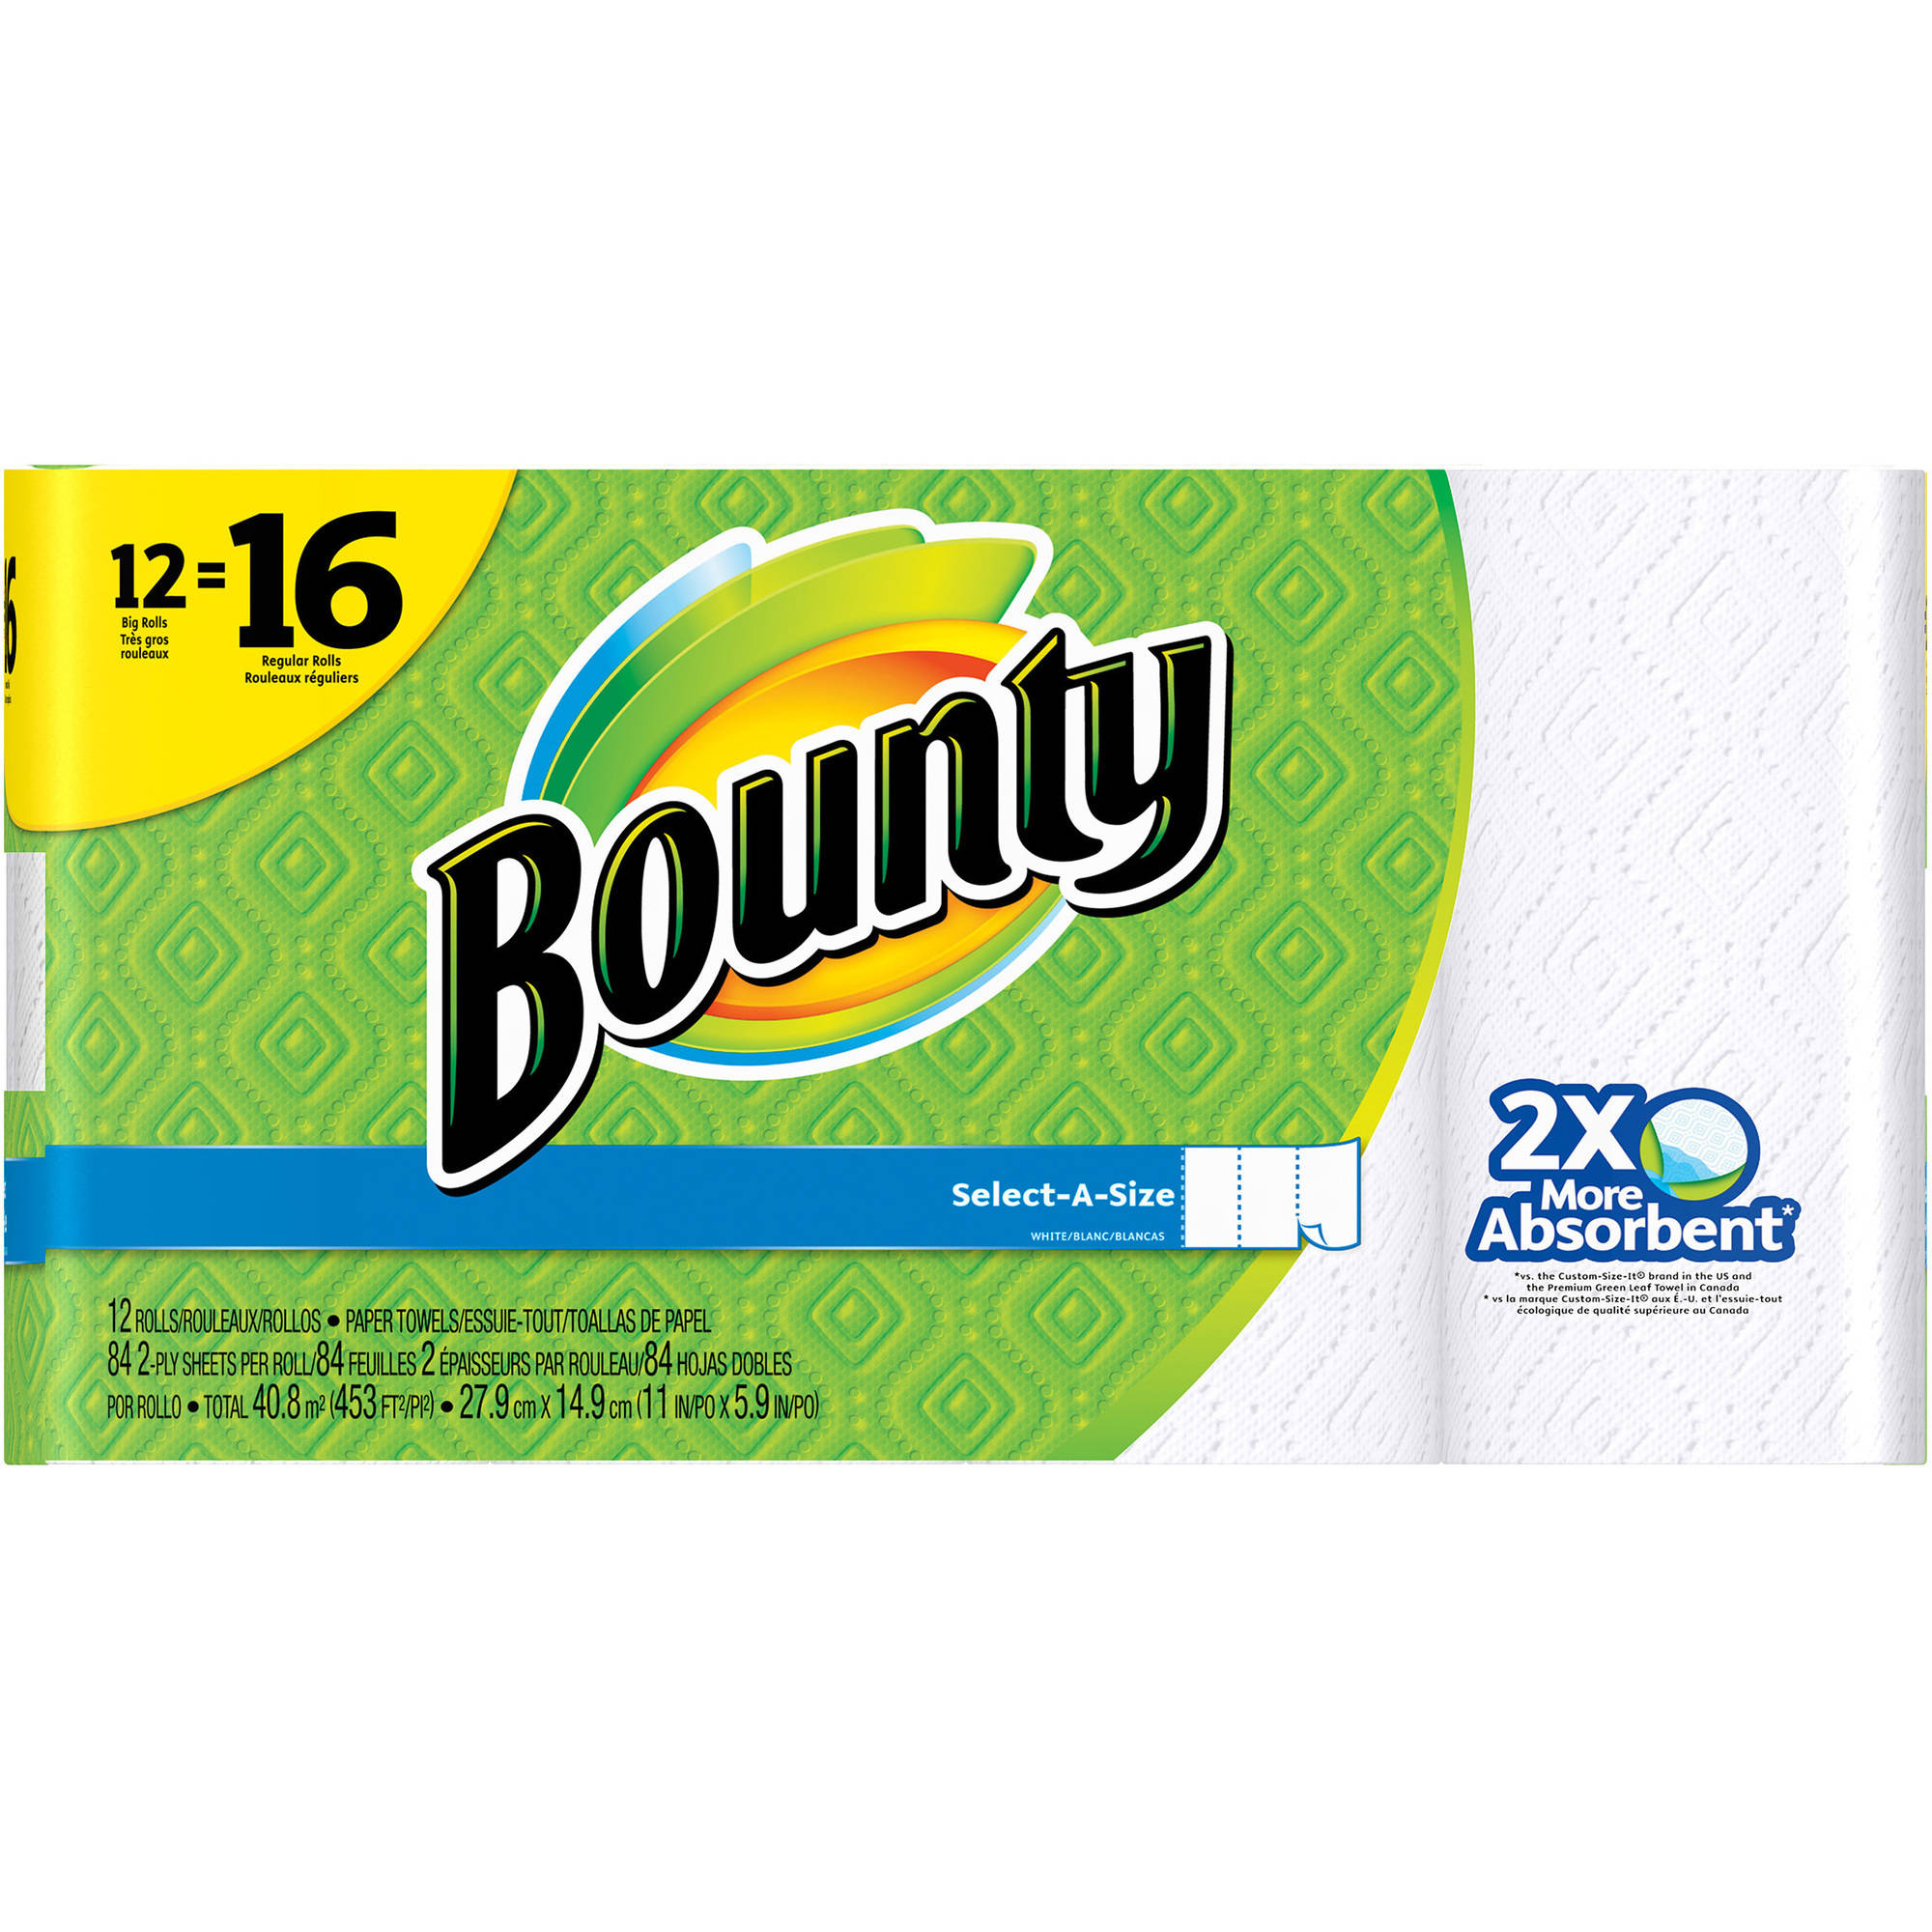 Bounty Select-a-Size Big Roll Paper Towels, 84 sheets, 12 rolls